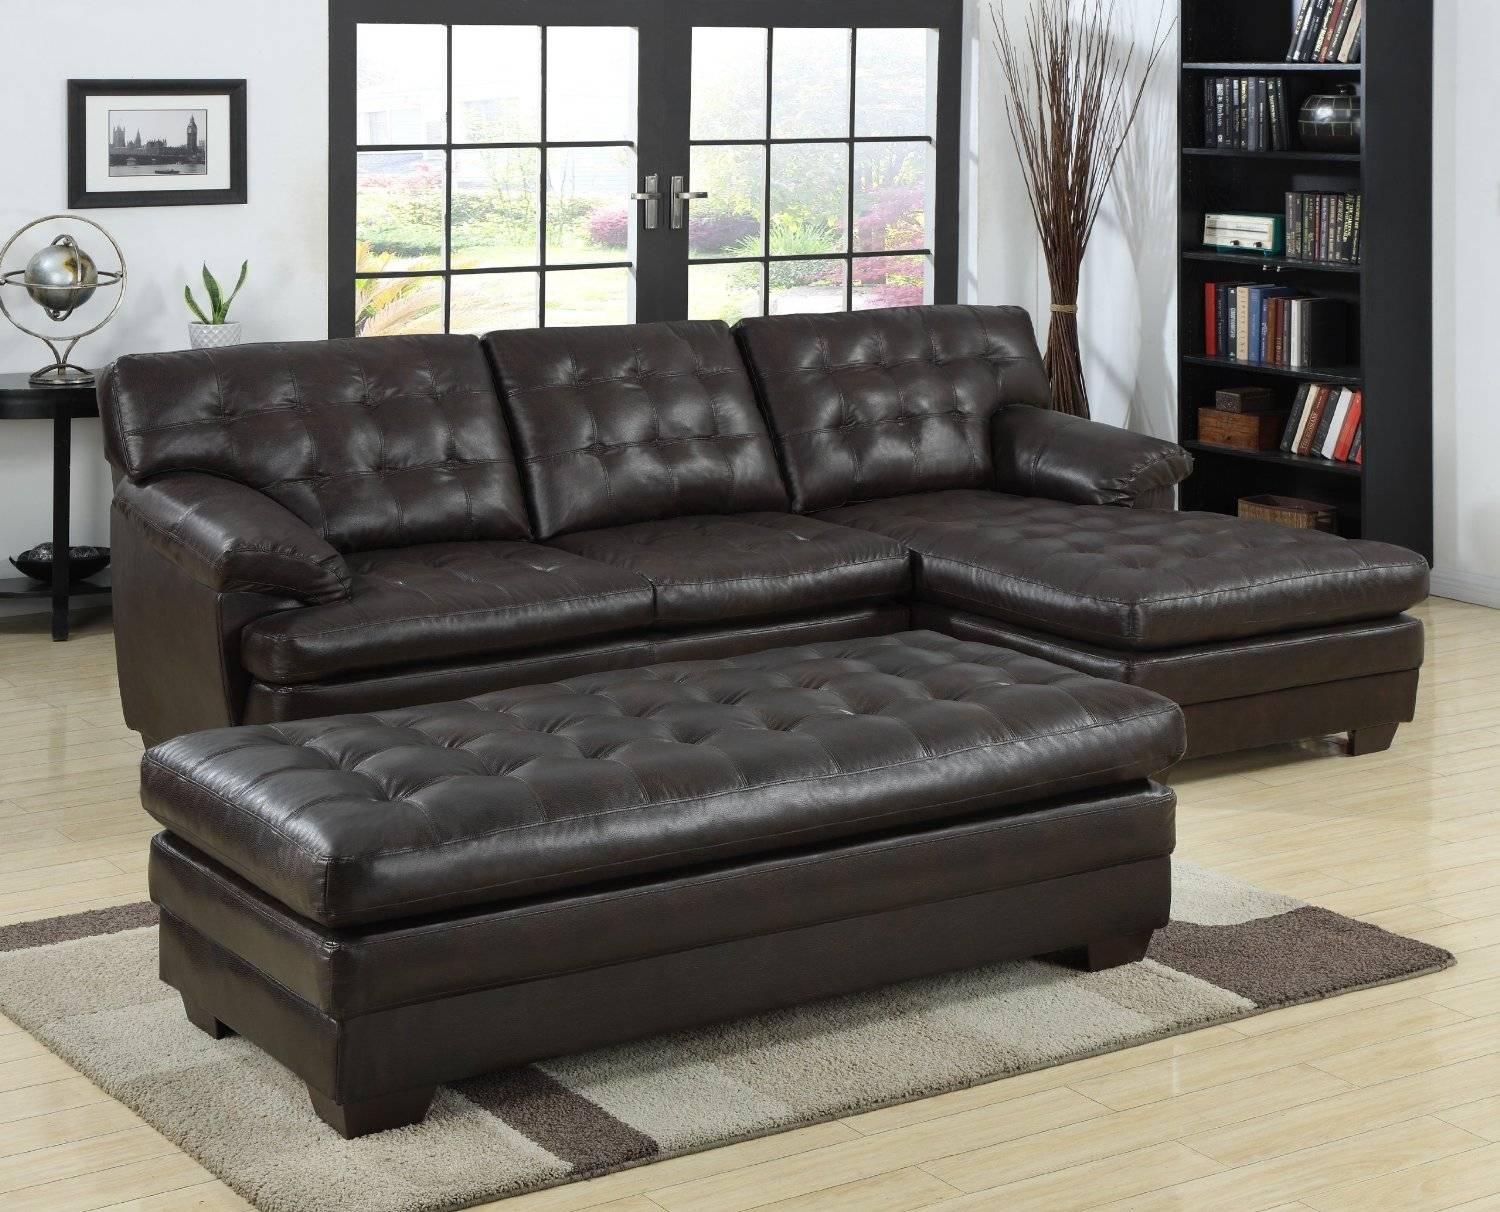 Black Tufted Leather Sectional Sofa With Chaise And Bench Seat Within Black Leather Chaise Sofas (View 4 of 15)